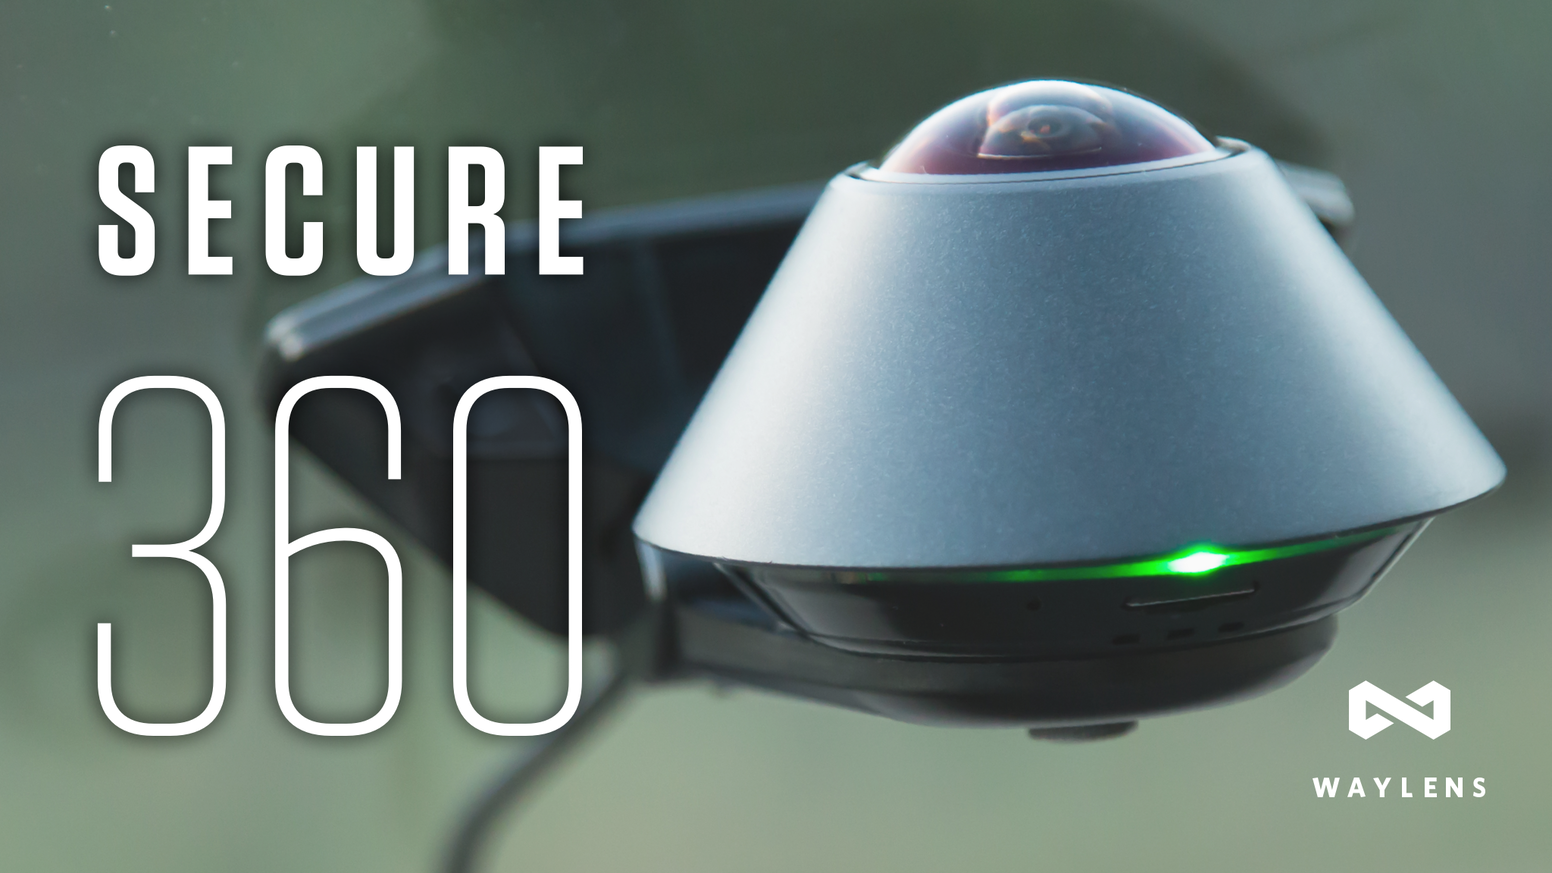 The first connected 360-degree dash camera that sees everything going on in and around your vehicle, all the time, even when parked. SUCCESSFULLY FUNDED at 610% of GOAL; CLOSED 9/8/17